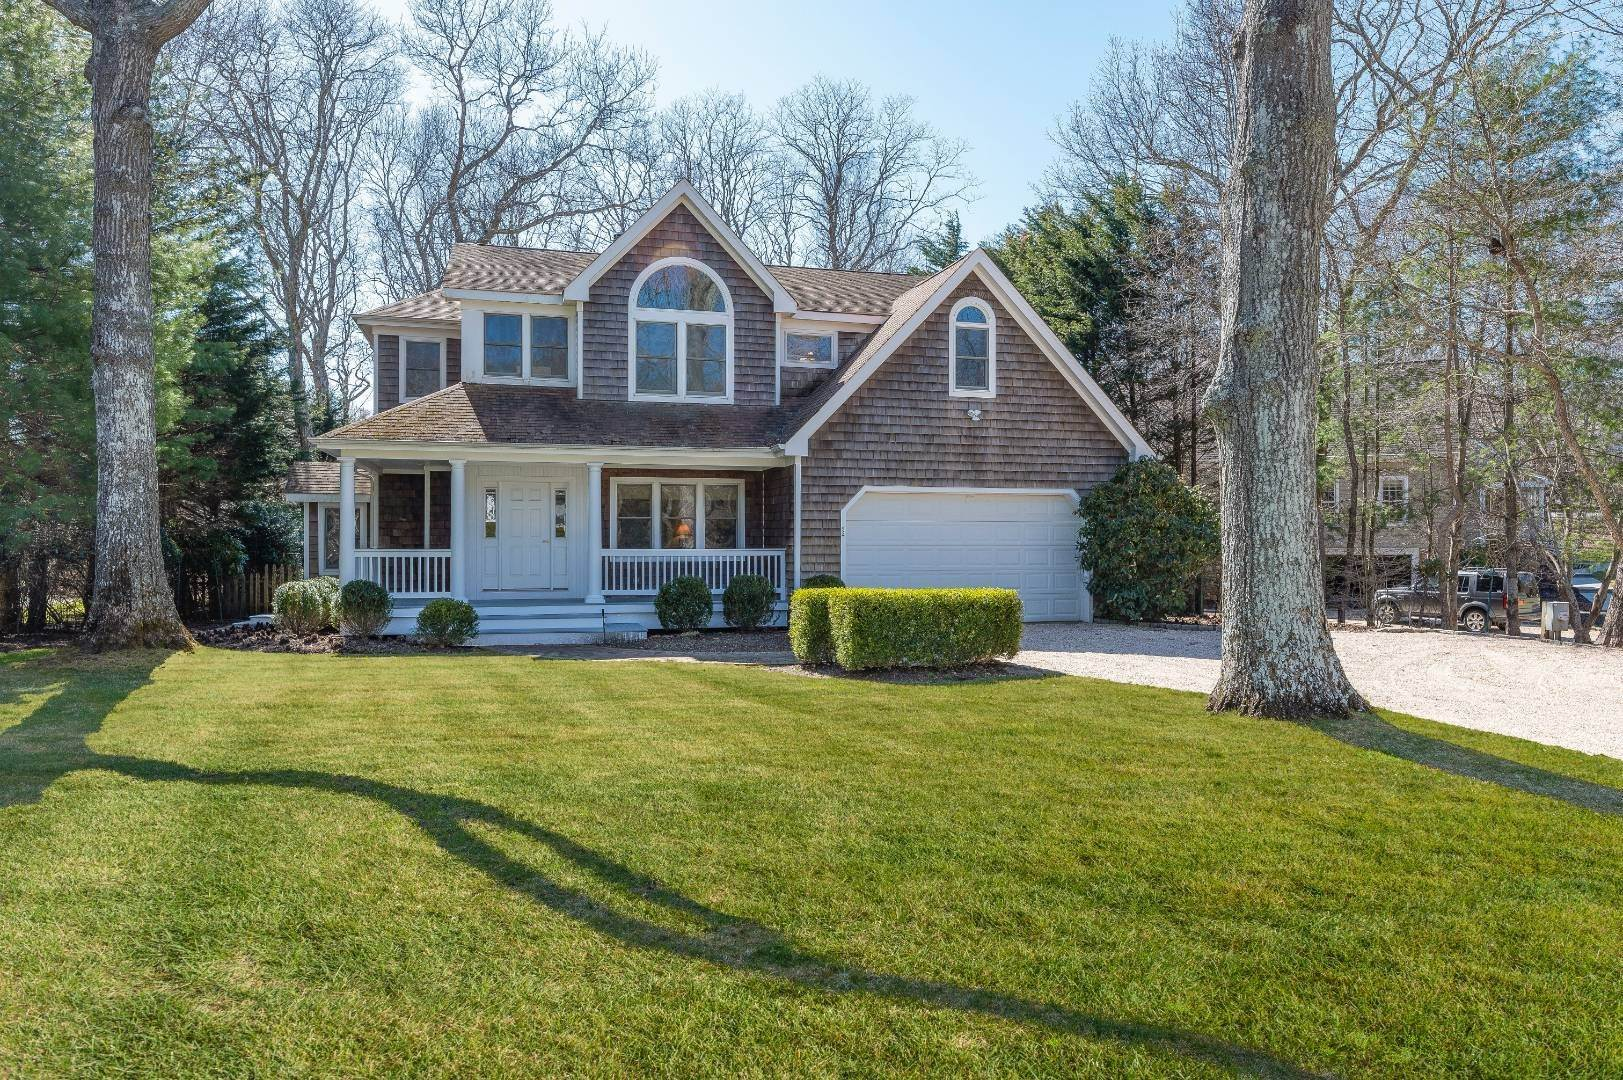 Single Family Home for Sale at Quiet Cul-De-Sac Street In Bridgehampton 8 Sea Farm Court, Bridgehampton, NY 11932